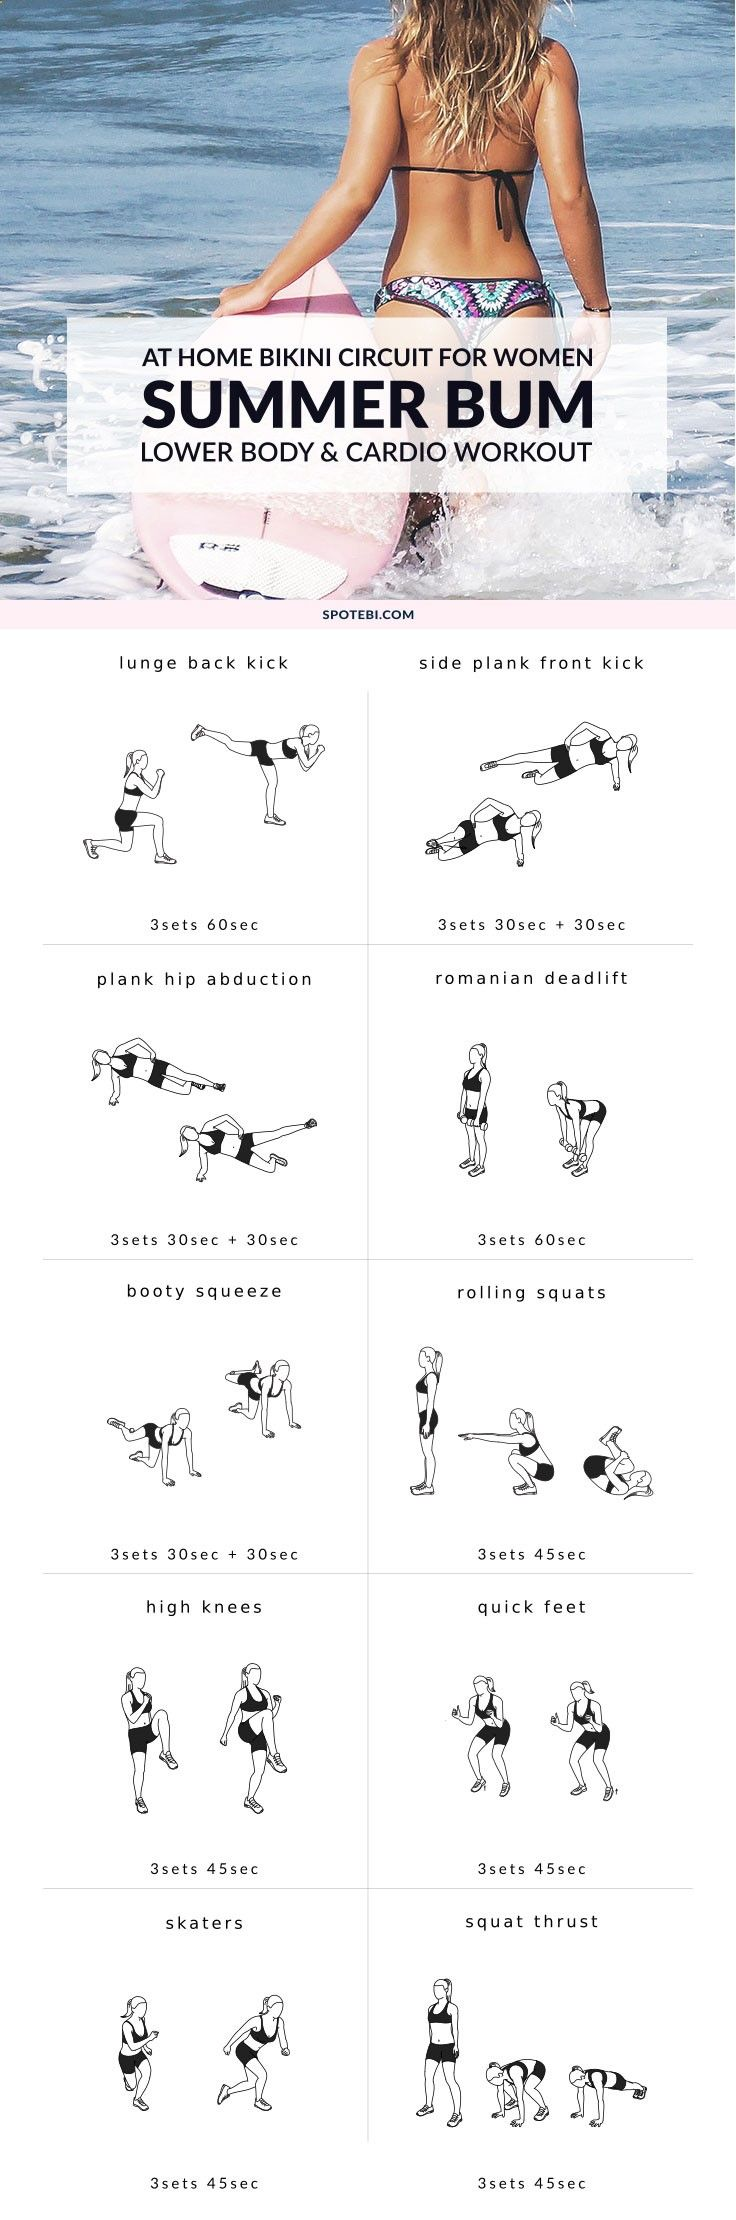 Try this lower body and cardio workout, part of the Bikini Body Edition, to tighten your core, tone your legs and sculpt a sexy beach bum. Grab a set of dumbbells, turn on the music and start the countdown to your best summer body! www.spotebi.com/...